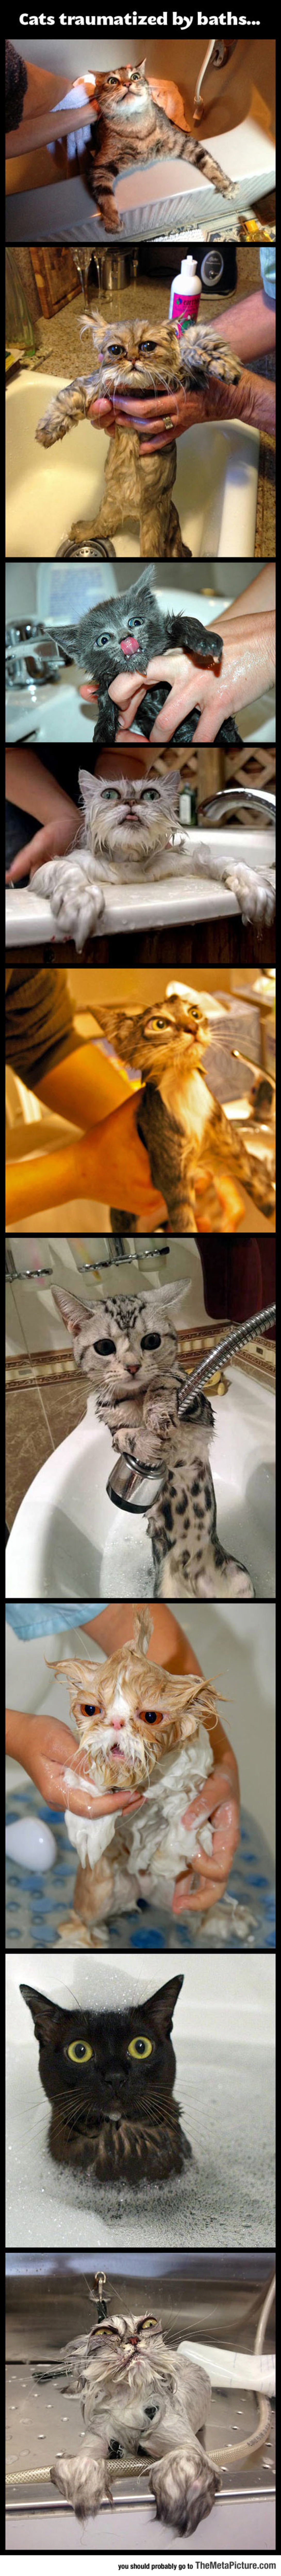 Bathing Cats. .. I post this video a lot so some of you probably saw it already. This is my kitty. He's a year old now, but when we first got him, I pulled him into the shower.